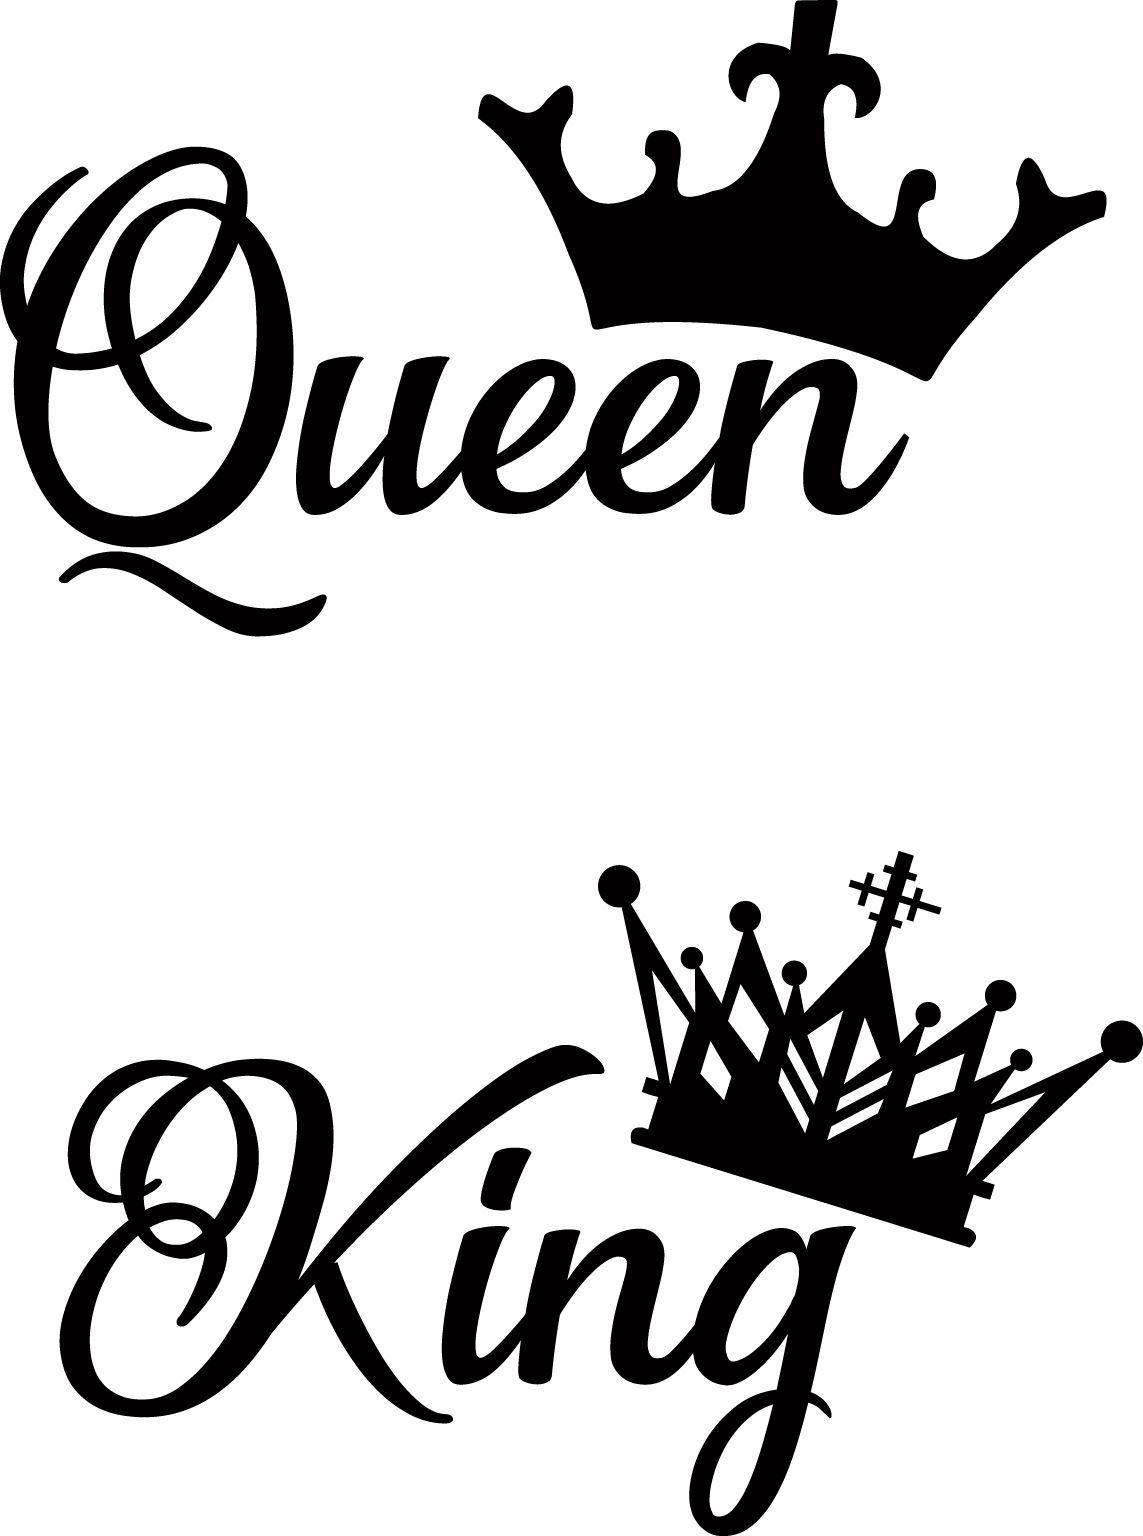 Archivos Compartidos Vectores Queen Y King In